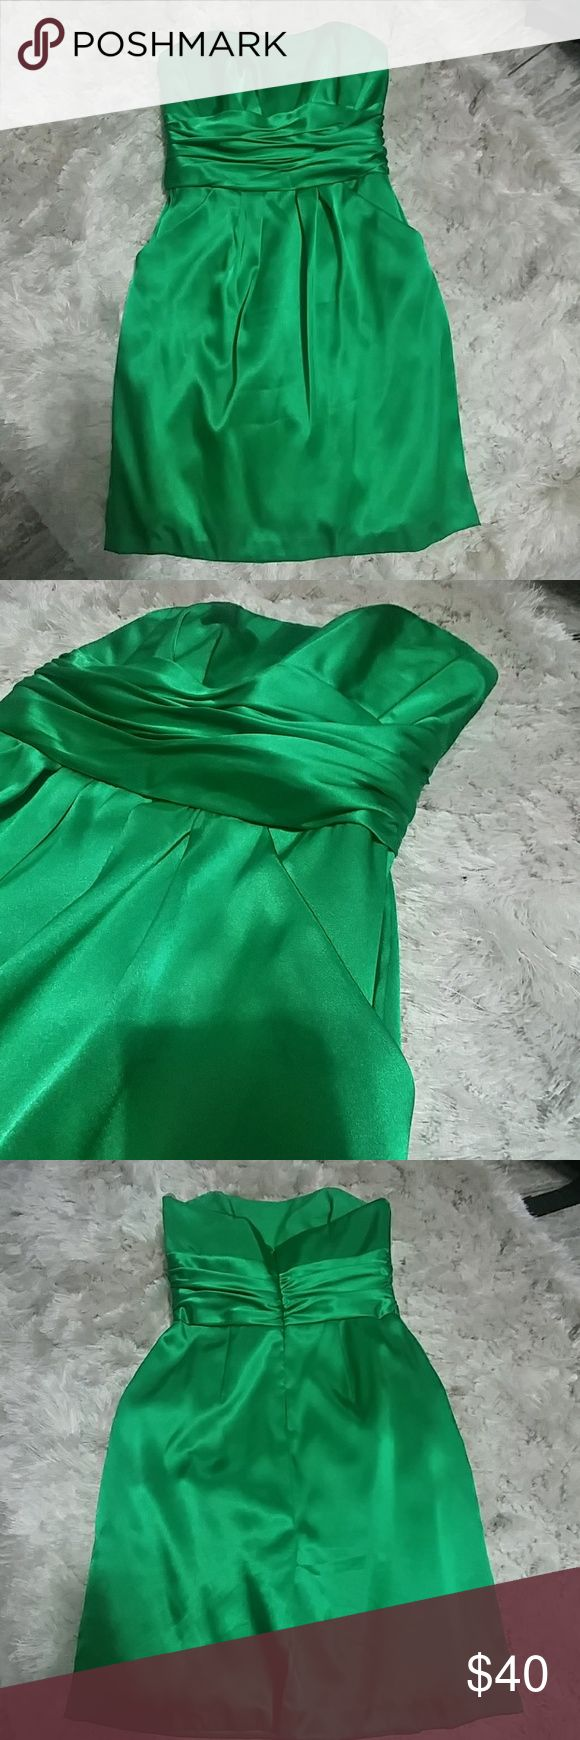 "🍀SALE!!! St. Patrick's Day Green satin dress 🍀 Satin Strapless  Worn once as a bridesmaid  Size 6  Has 2 pockets in the front!  Beautiful rouching around waistline  Zipper in back  I am 5'6"" and this fits 1"" above knee davids bridal Dresses Strapless"